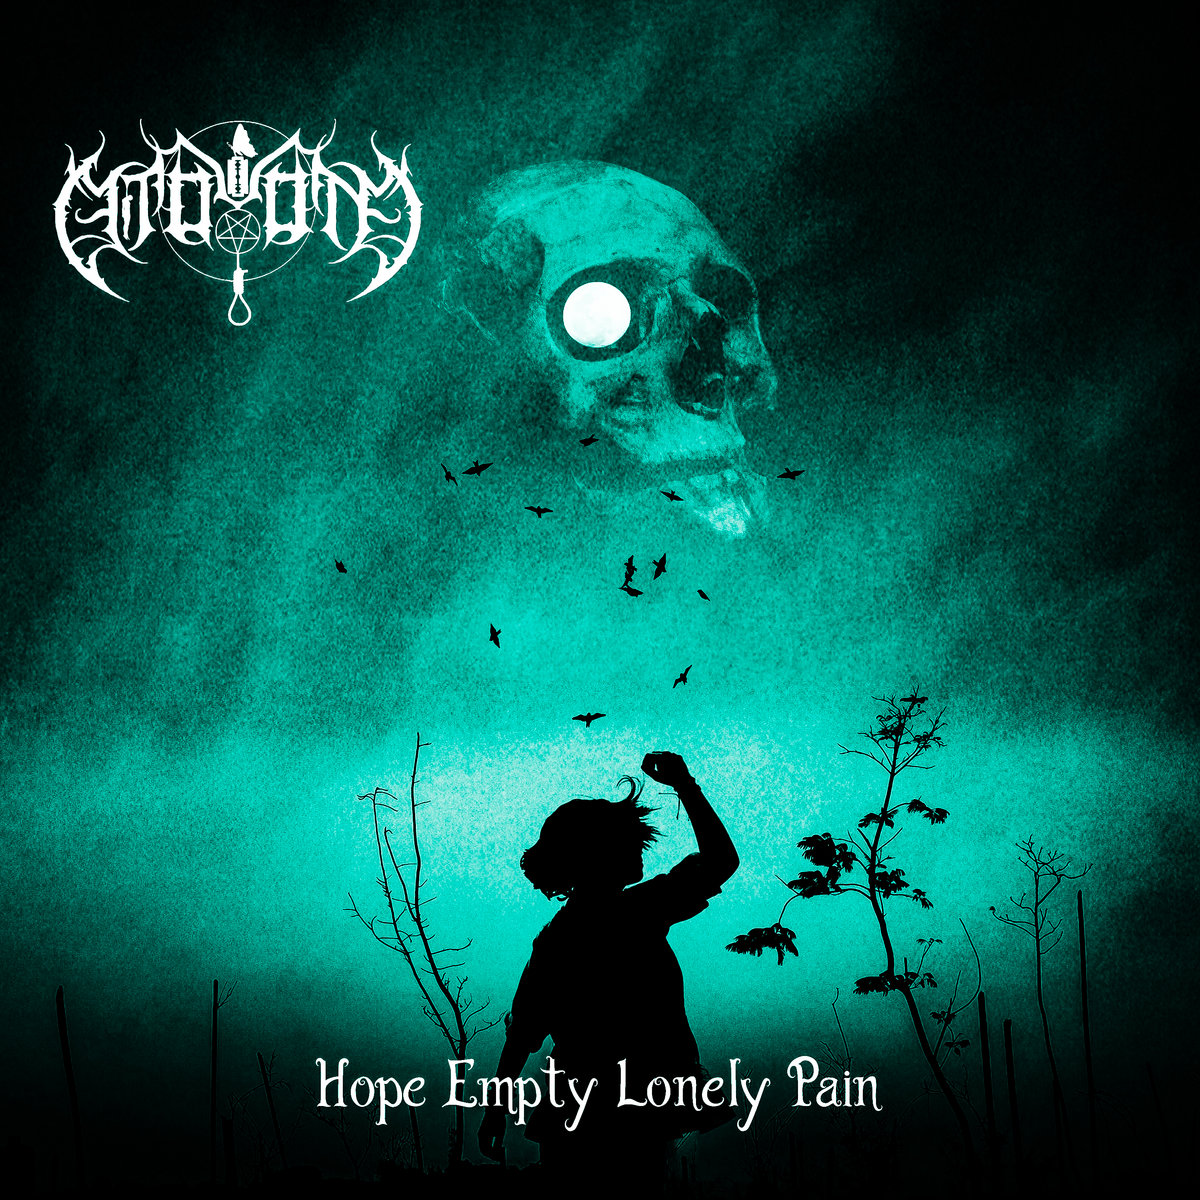 Moon - Hope Empty Lonely Pain (2021)